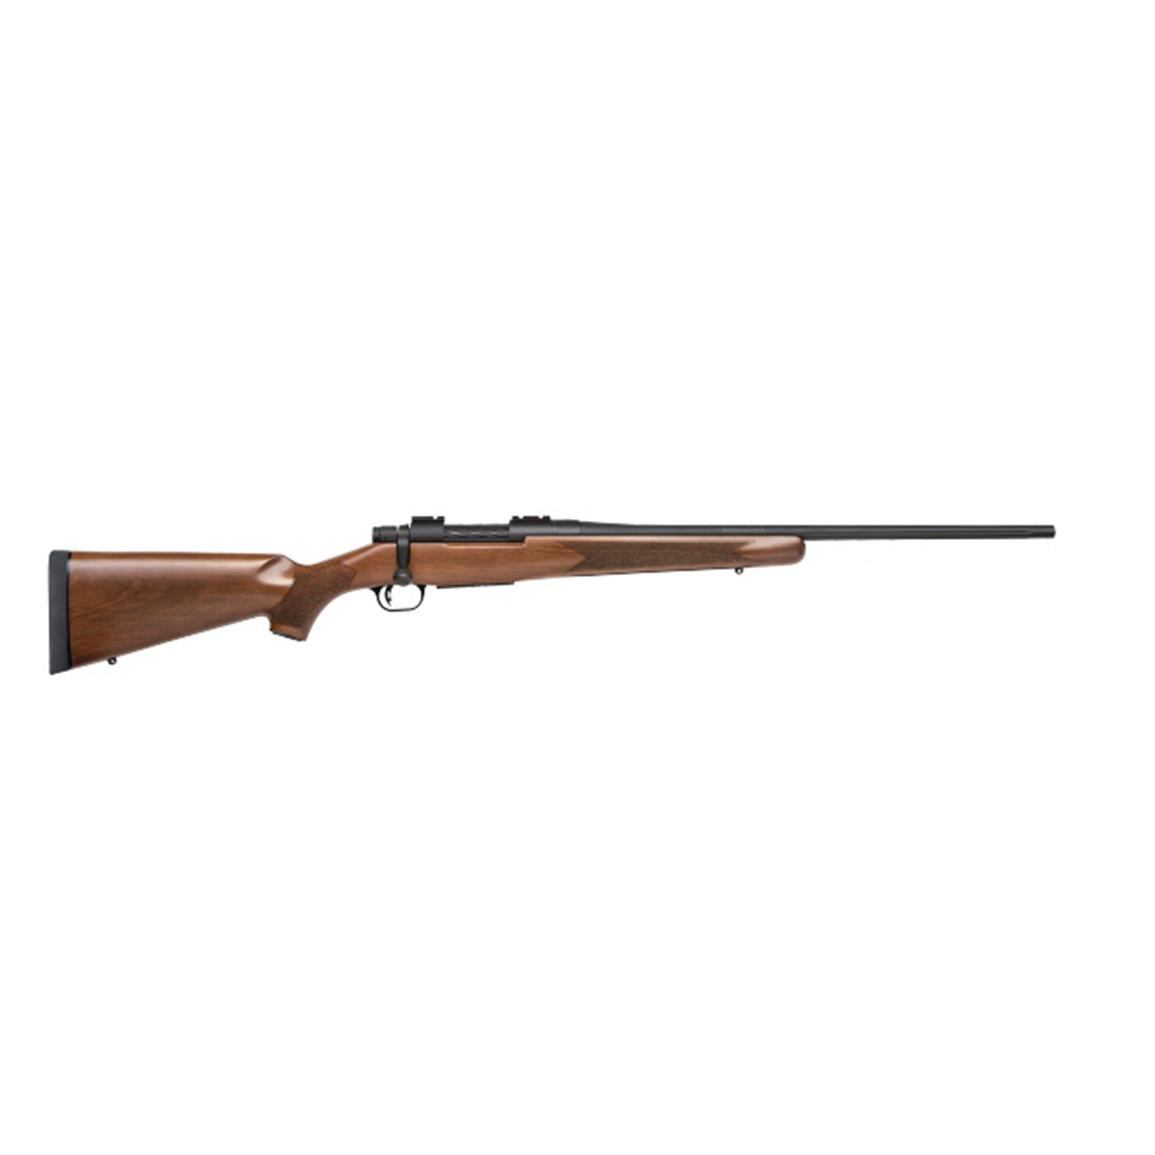 "Mossberg Patriot, Bolt Action, .308 Winchester, 22"" Barrel, 5+1 Rounds"